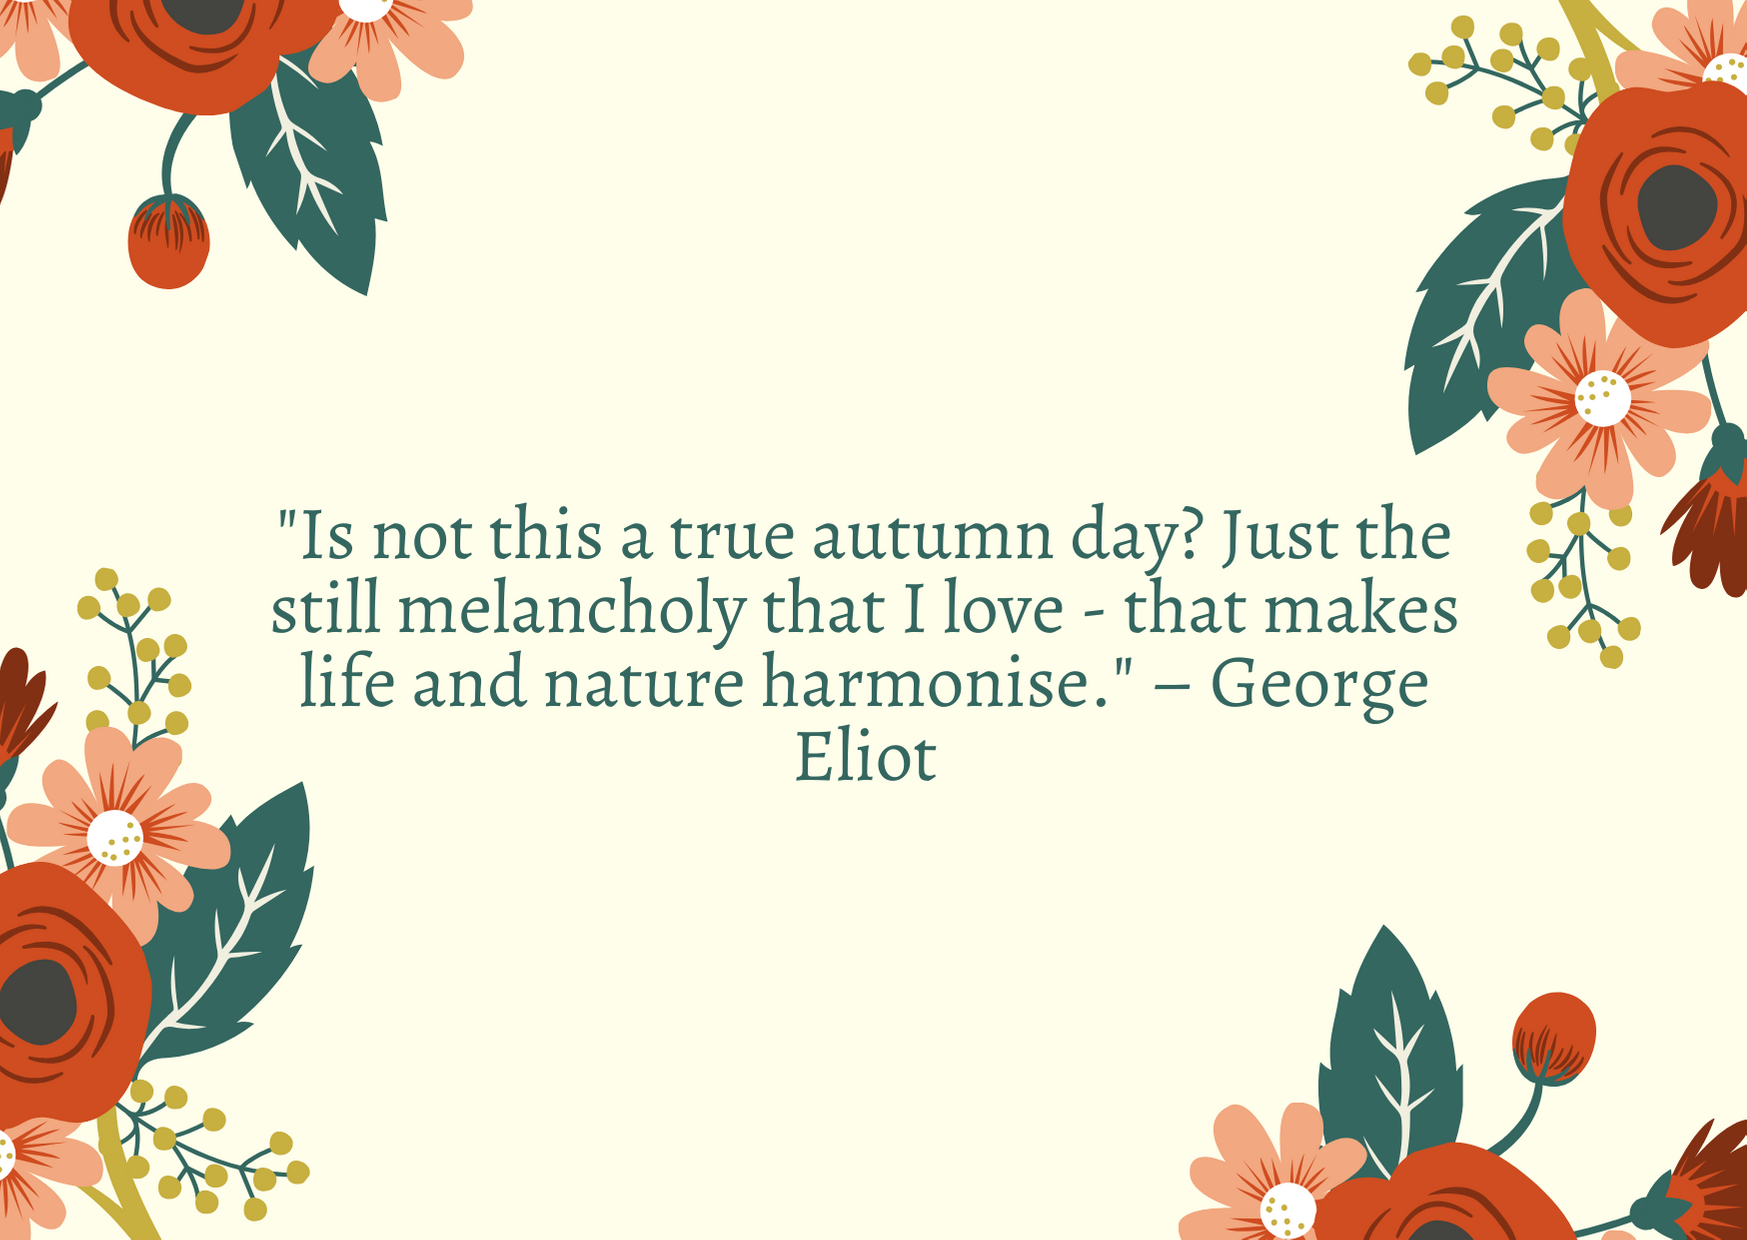 """Is not this a true autumn day? Just the still melancholy that I love - that makes life and nature harmonise."" – George Eliot"